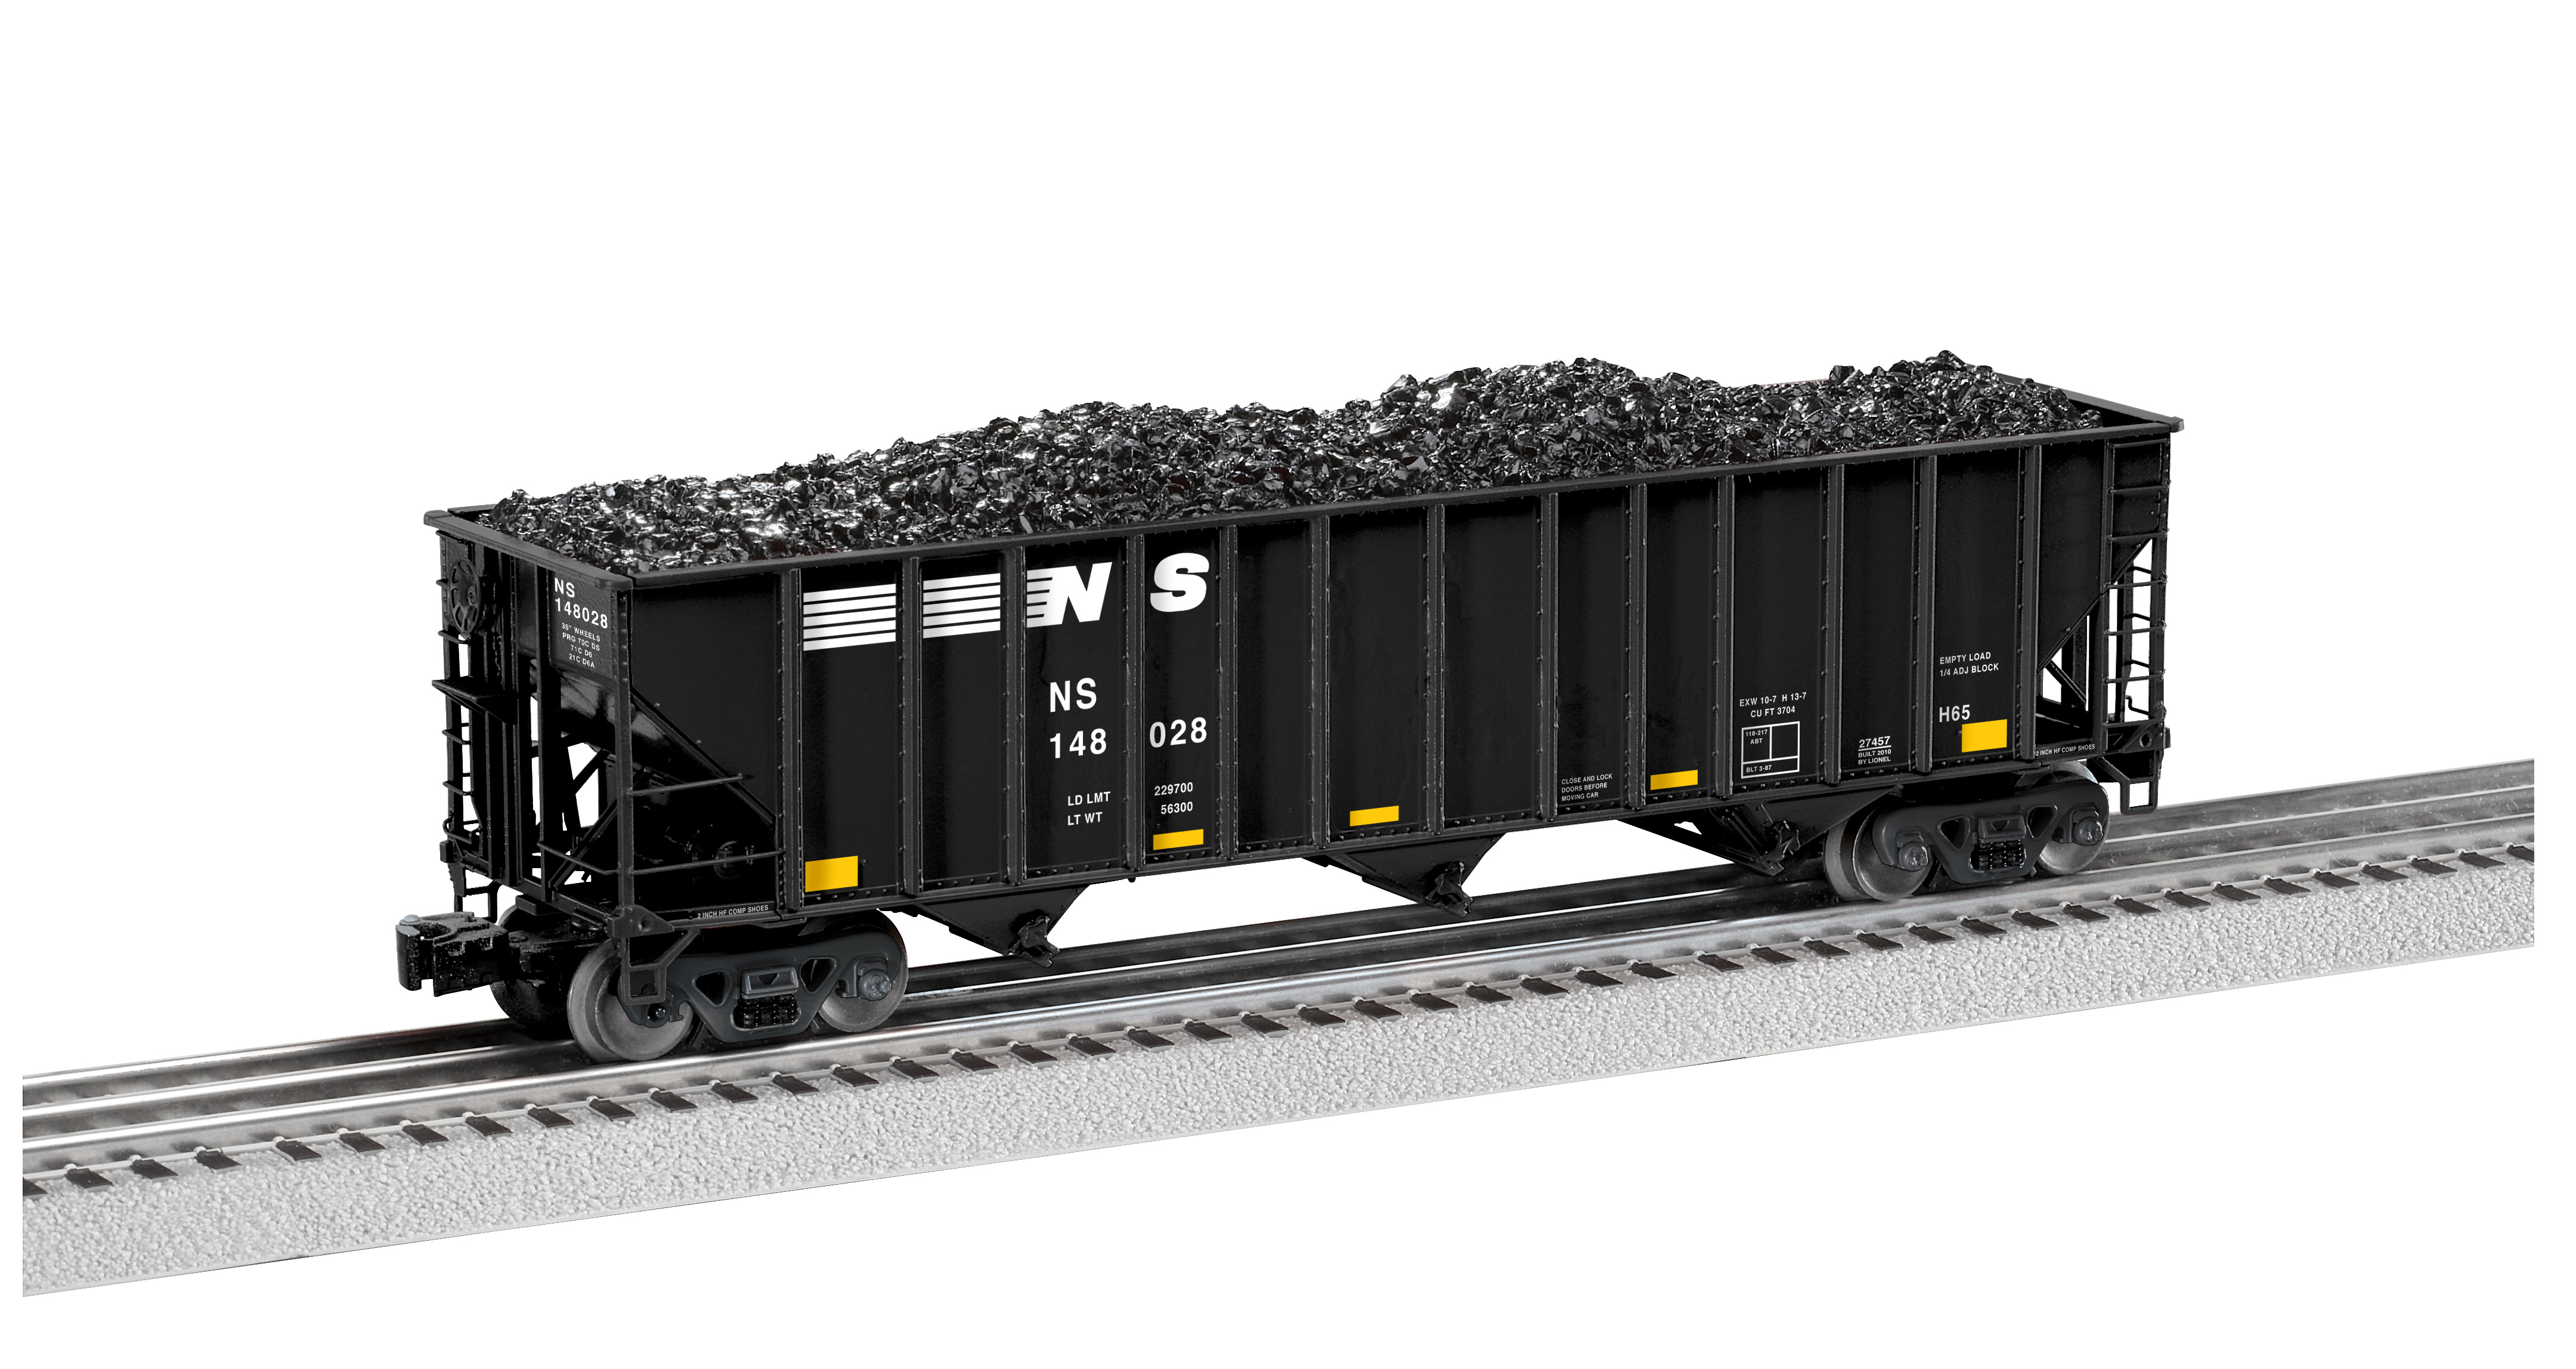 Visionline: Realistic Model Trains from Lionel